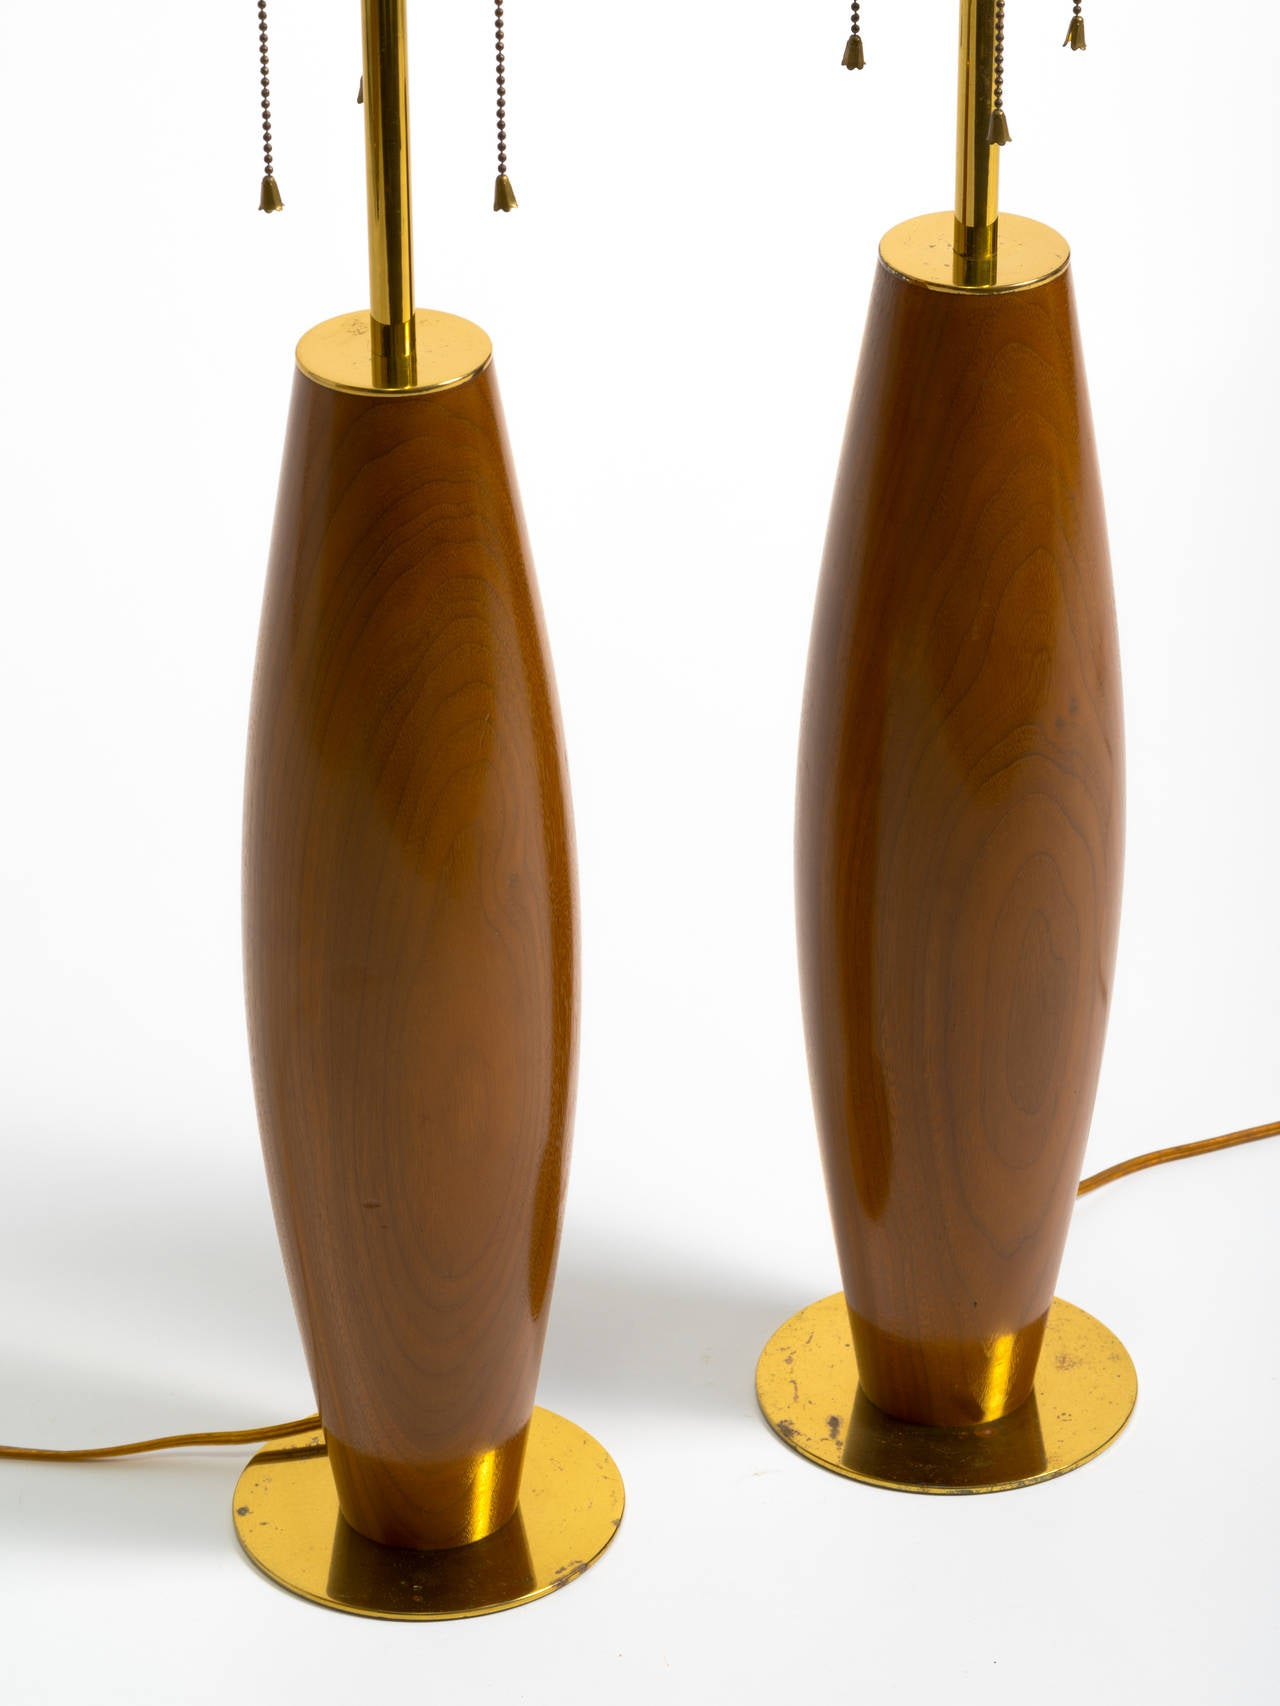 Pair of Monumental Walnut and Brass Table Lamps In Good Condition For Sale In Tarrytown, NY